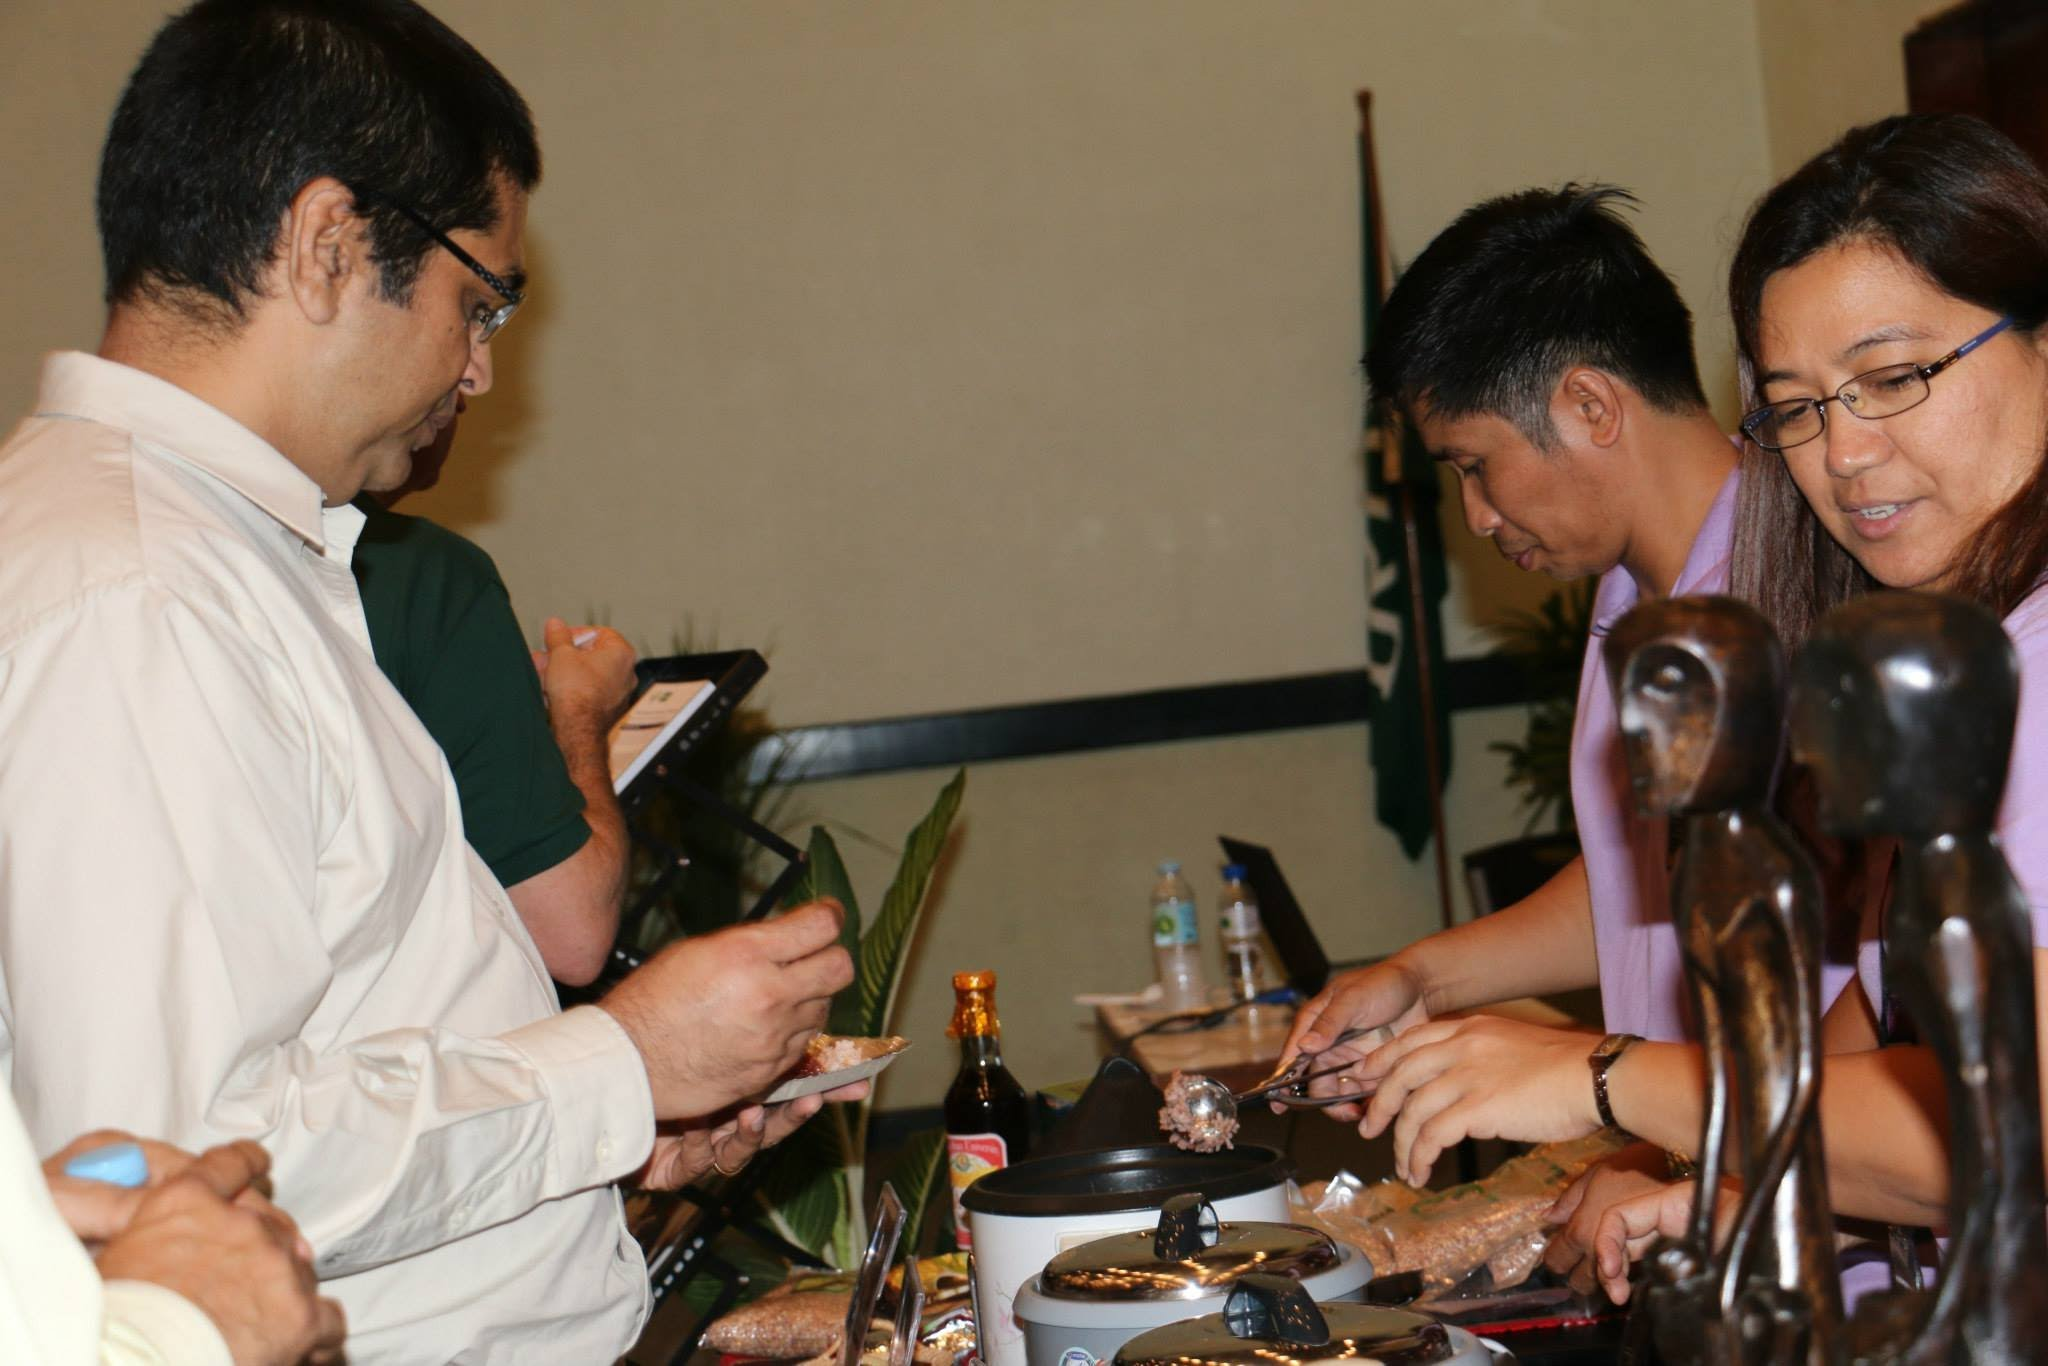 Mr. Jonar Victor Ibañez and Dr. Ana Cope serving a sample of heirloom rice.